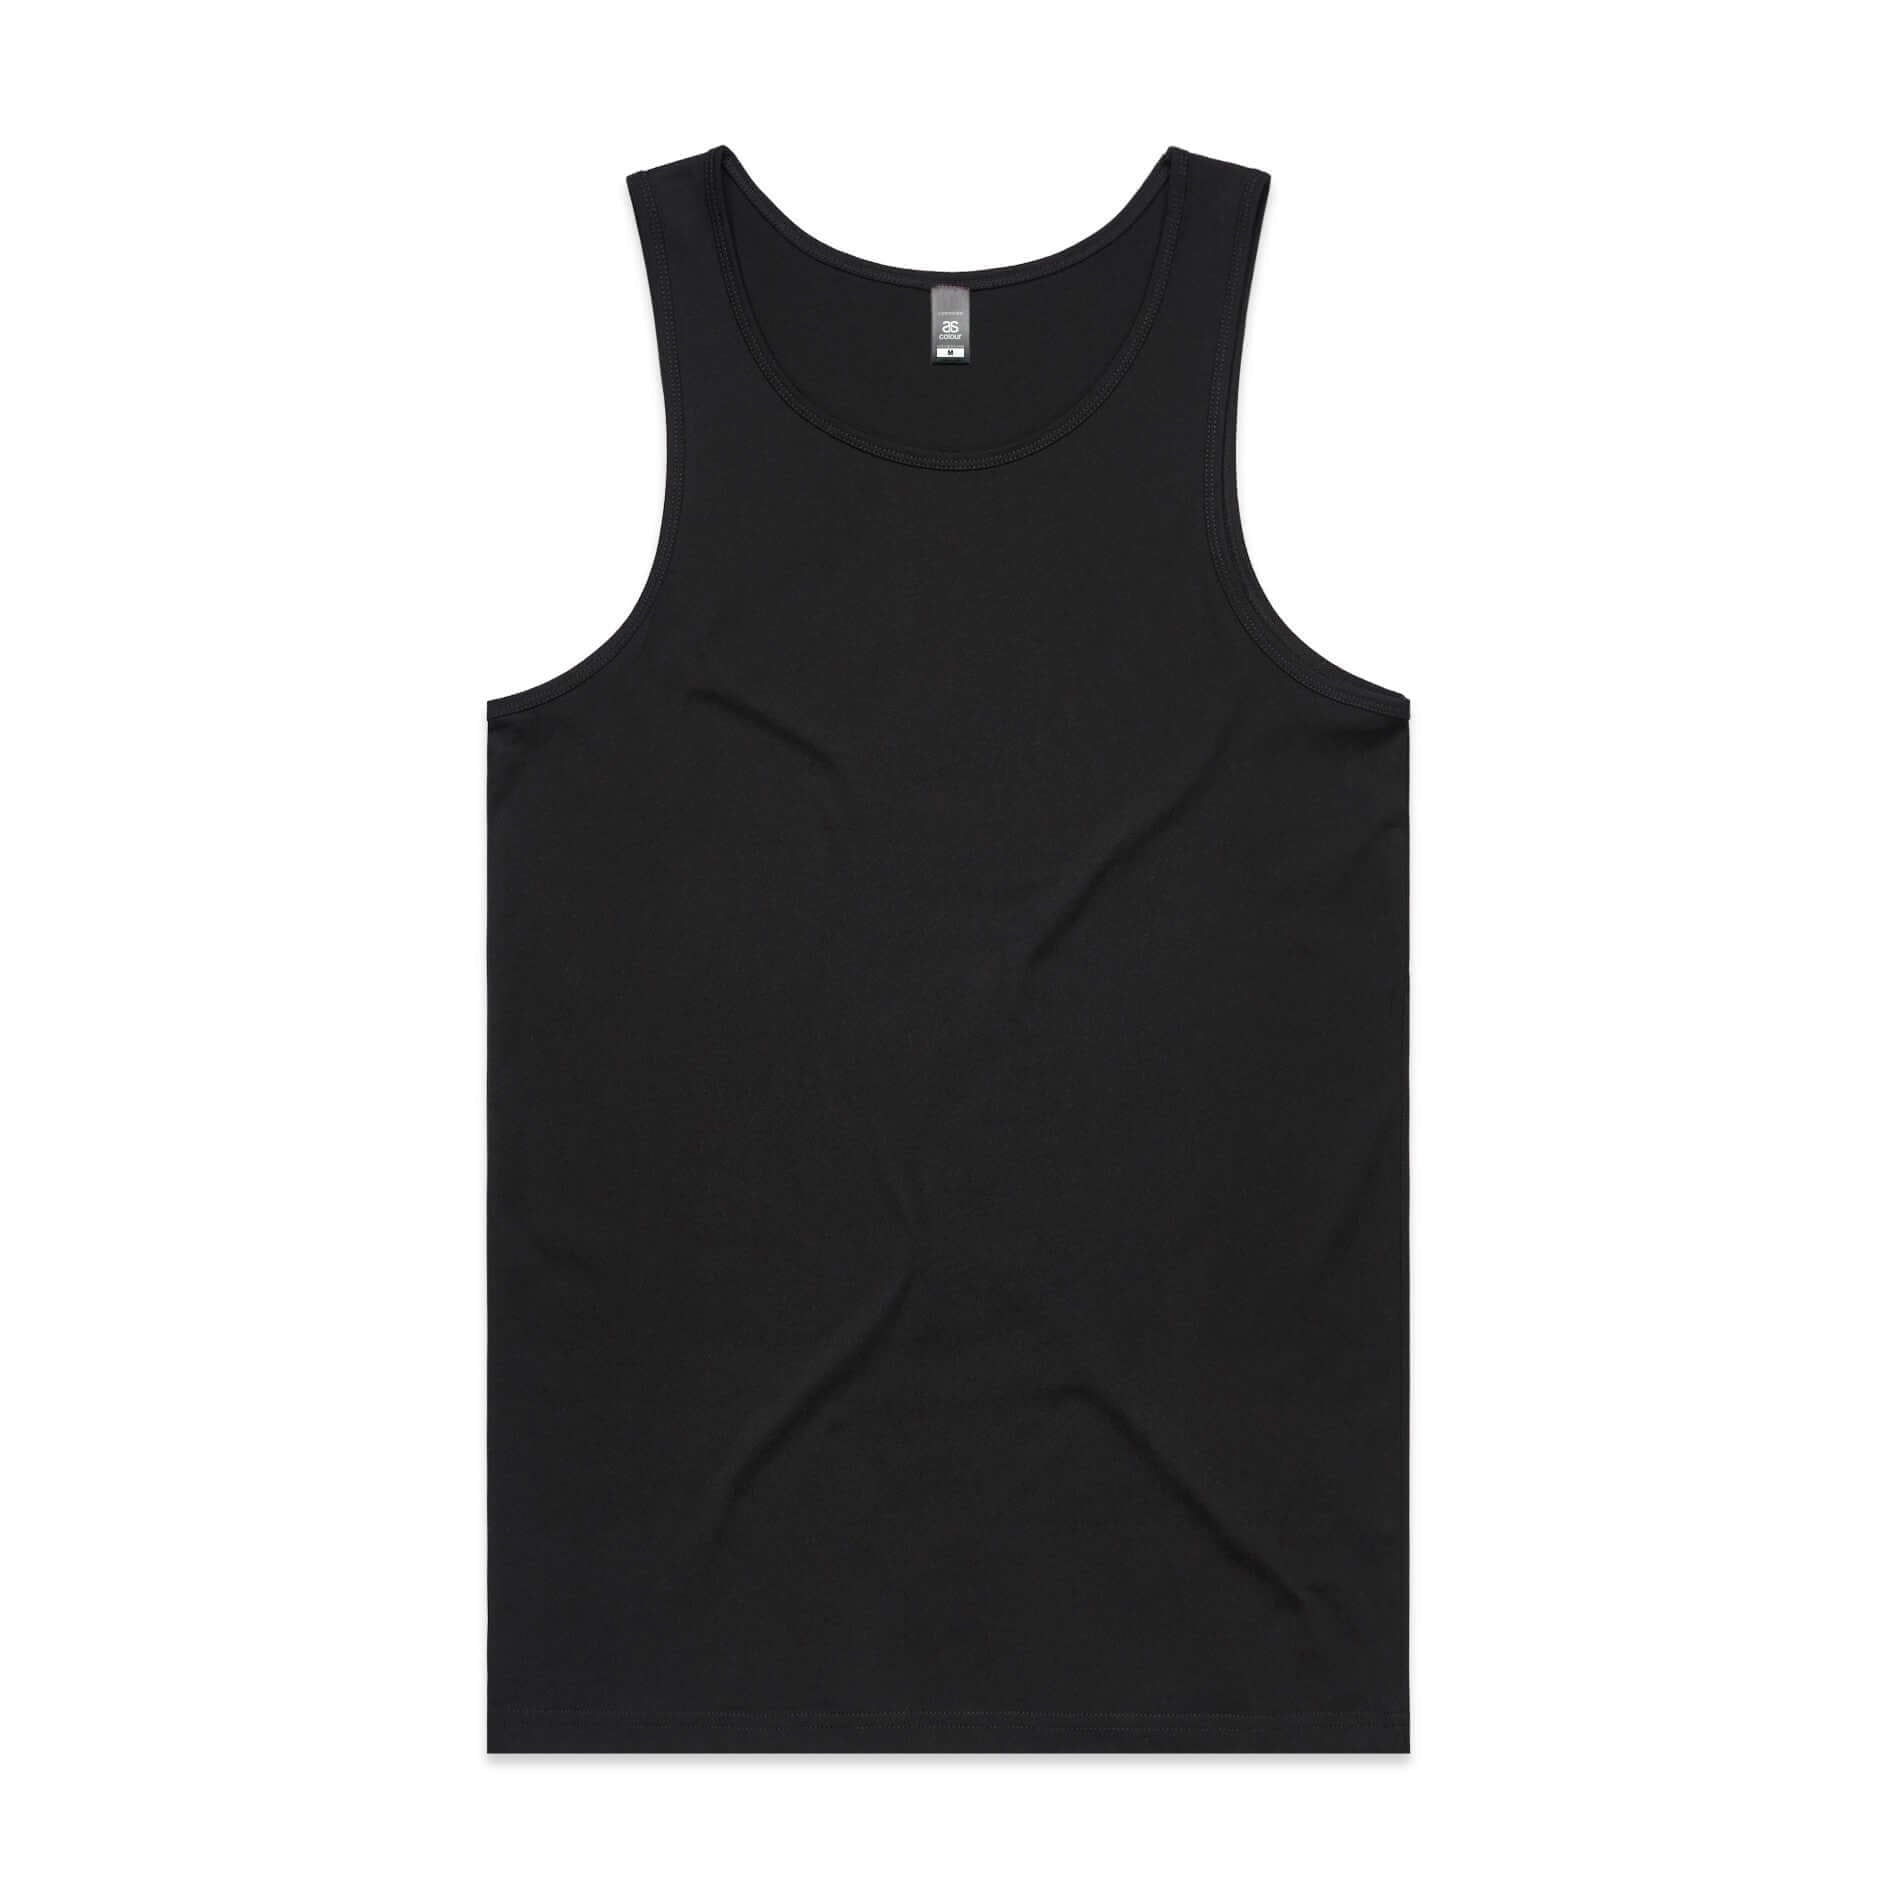 AS Colour LOWDOWN SINGLET - Black